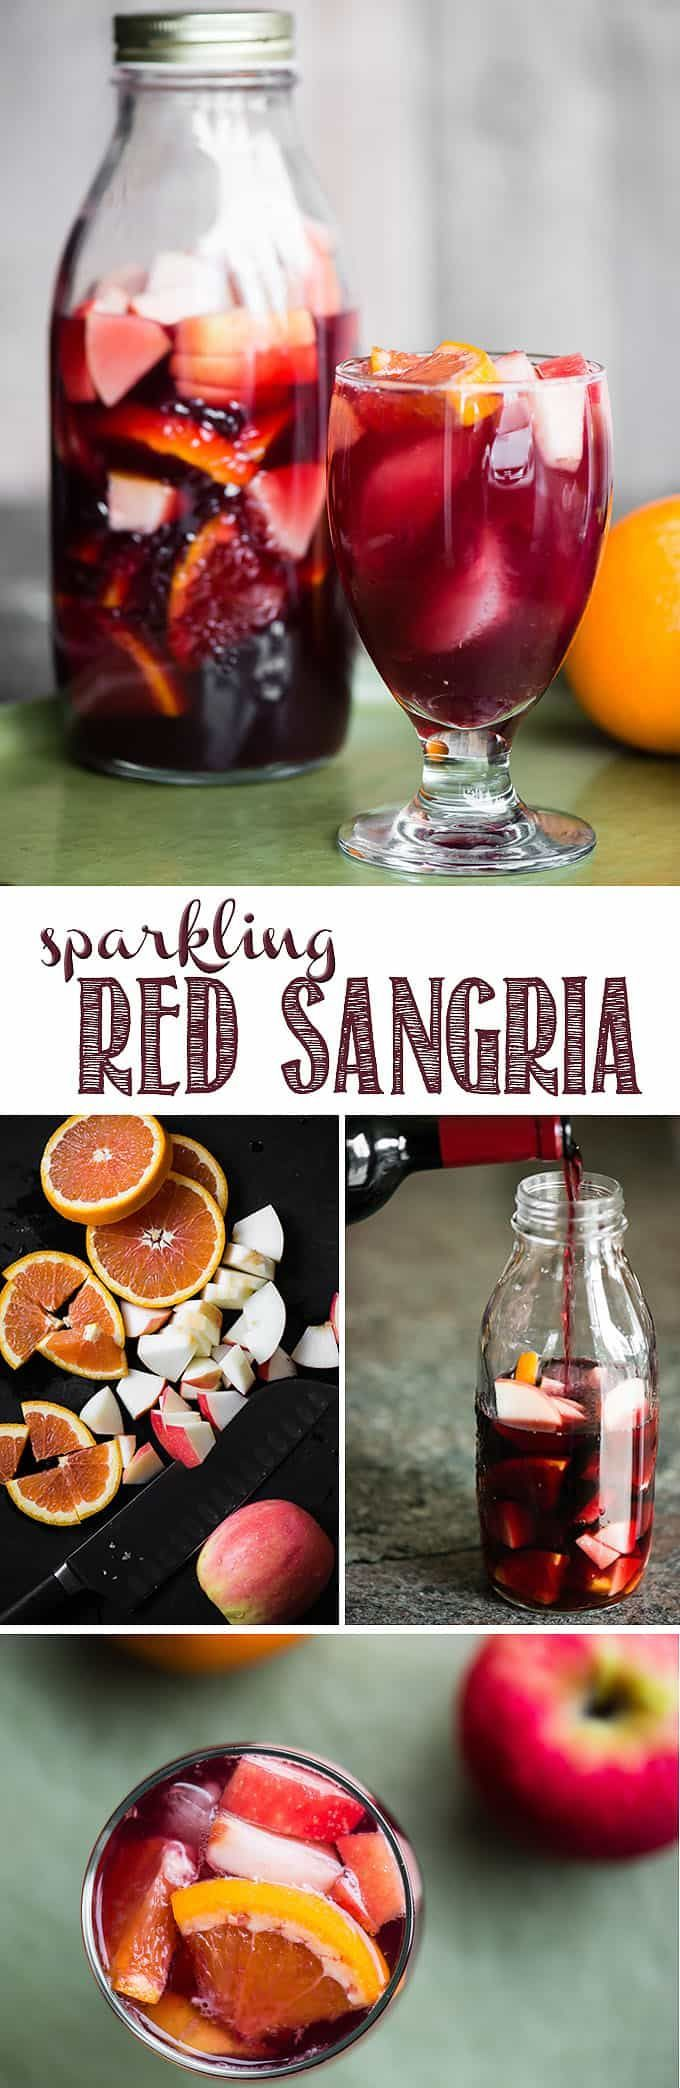 Sparkling Red Sangria Recipe and Video | Self Proclaimed Foodie